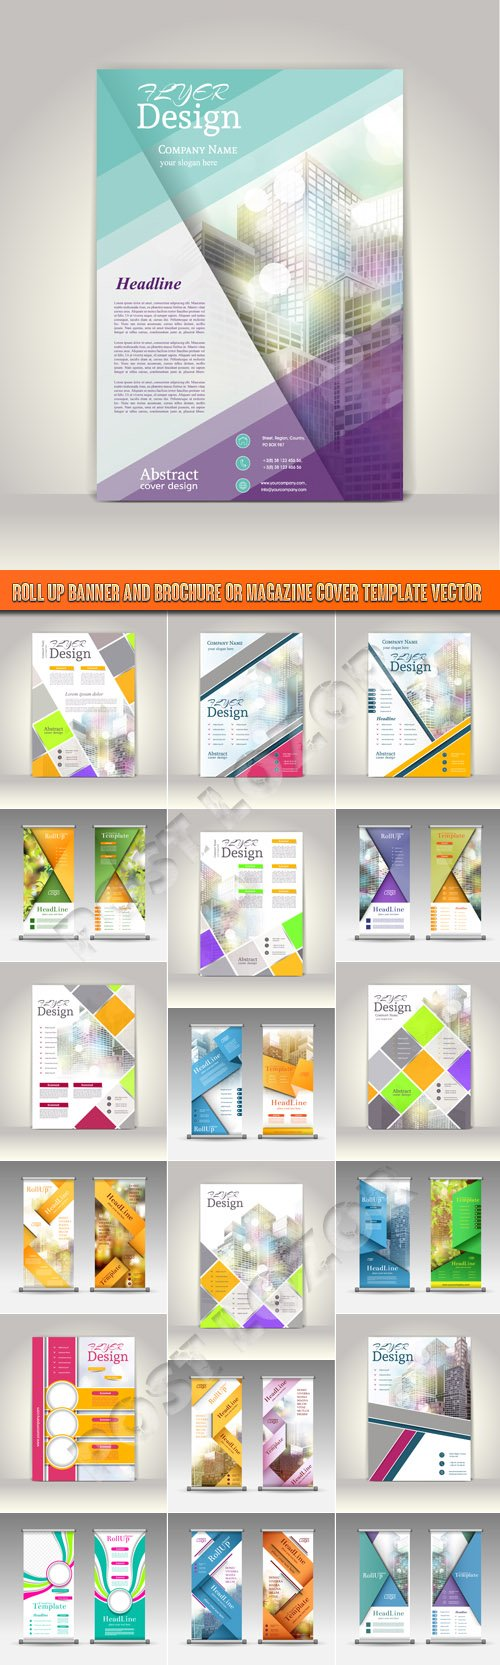 Roll up banner and brochure or magazine cover template vector